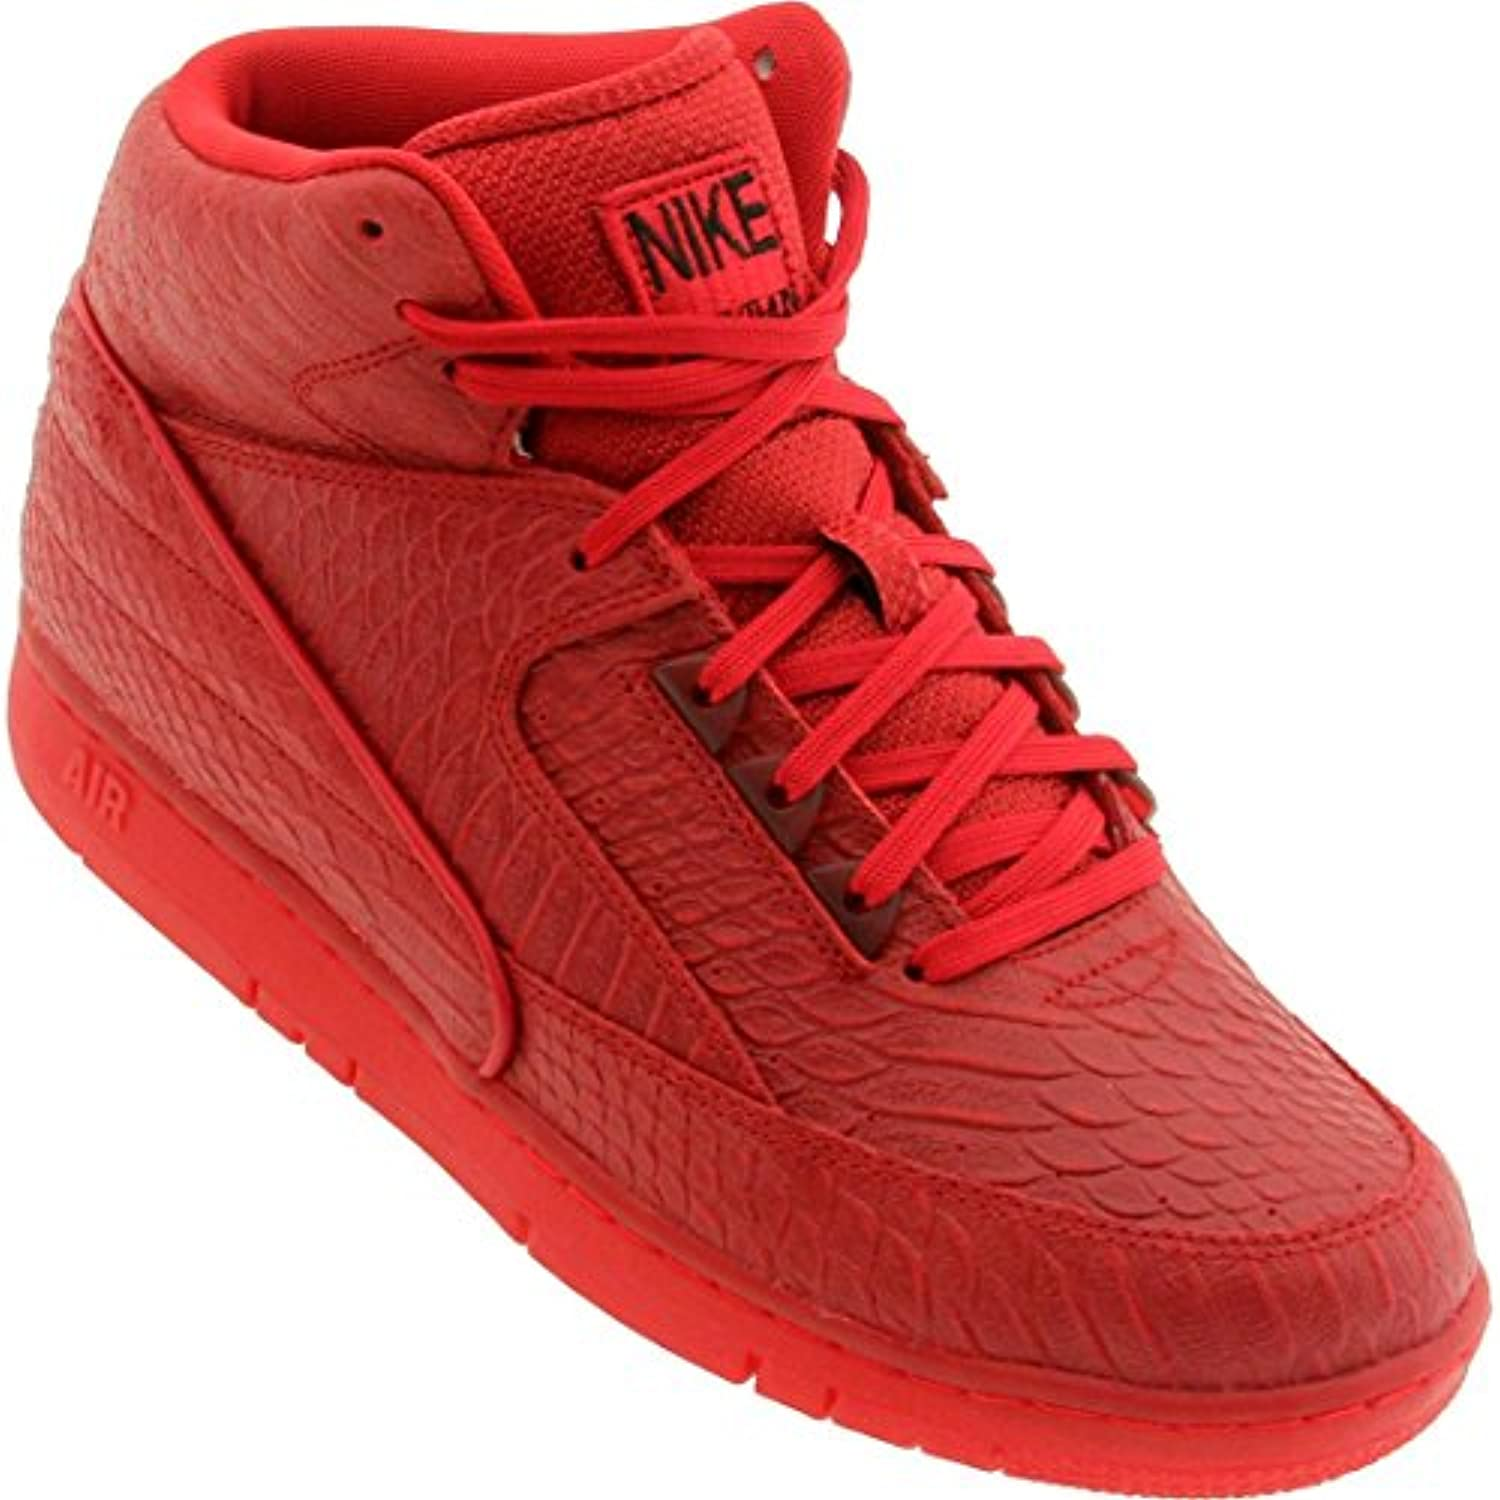 AIR PYTHON PRM 'RED OCTOBER' - 705066-600 - 7.5 - US Size